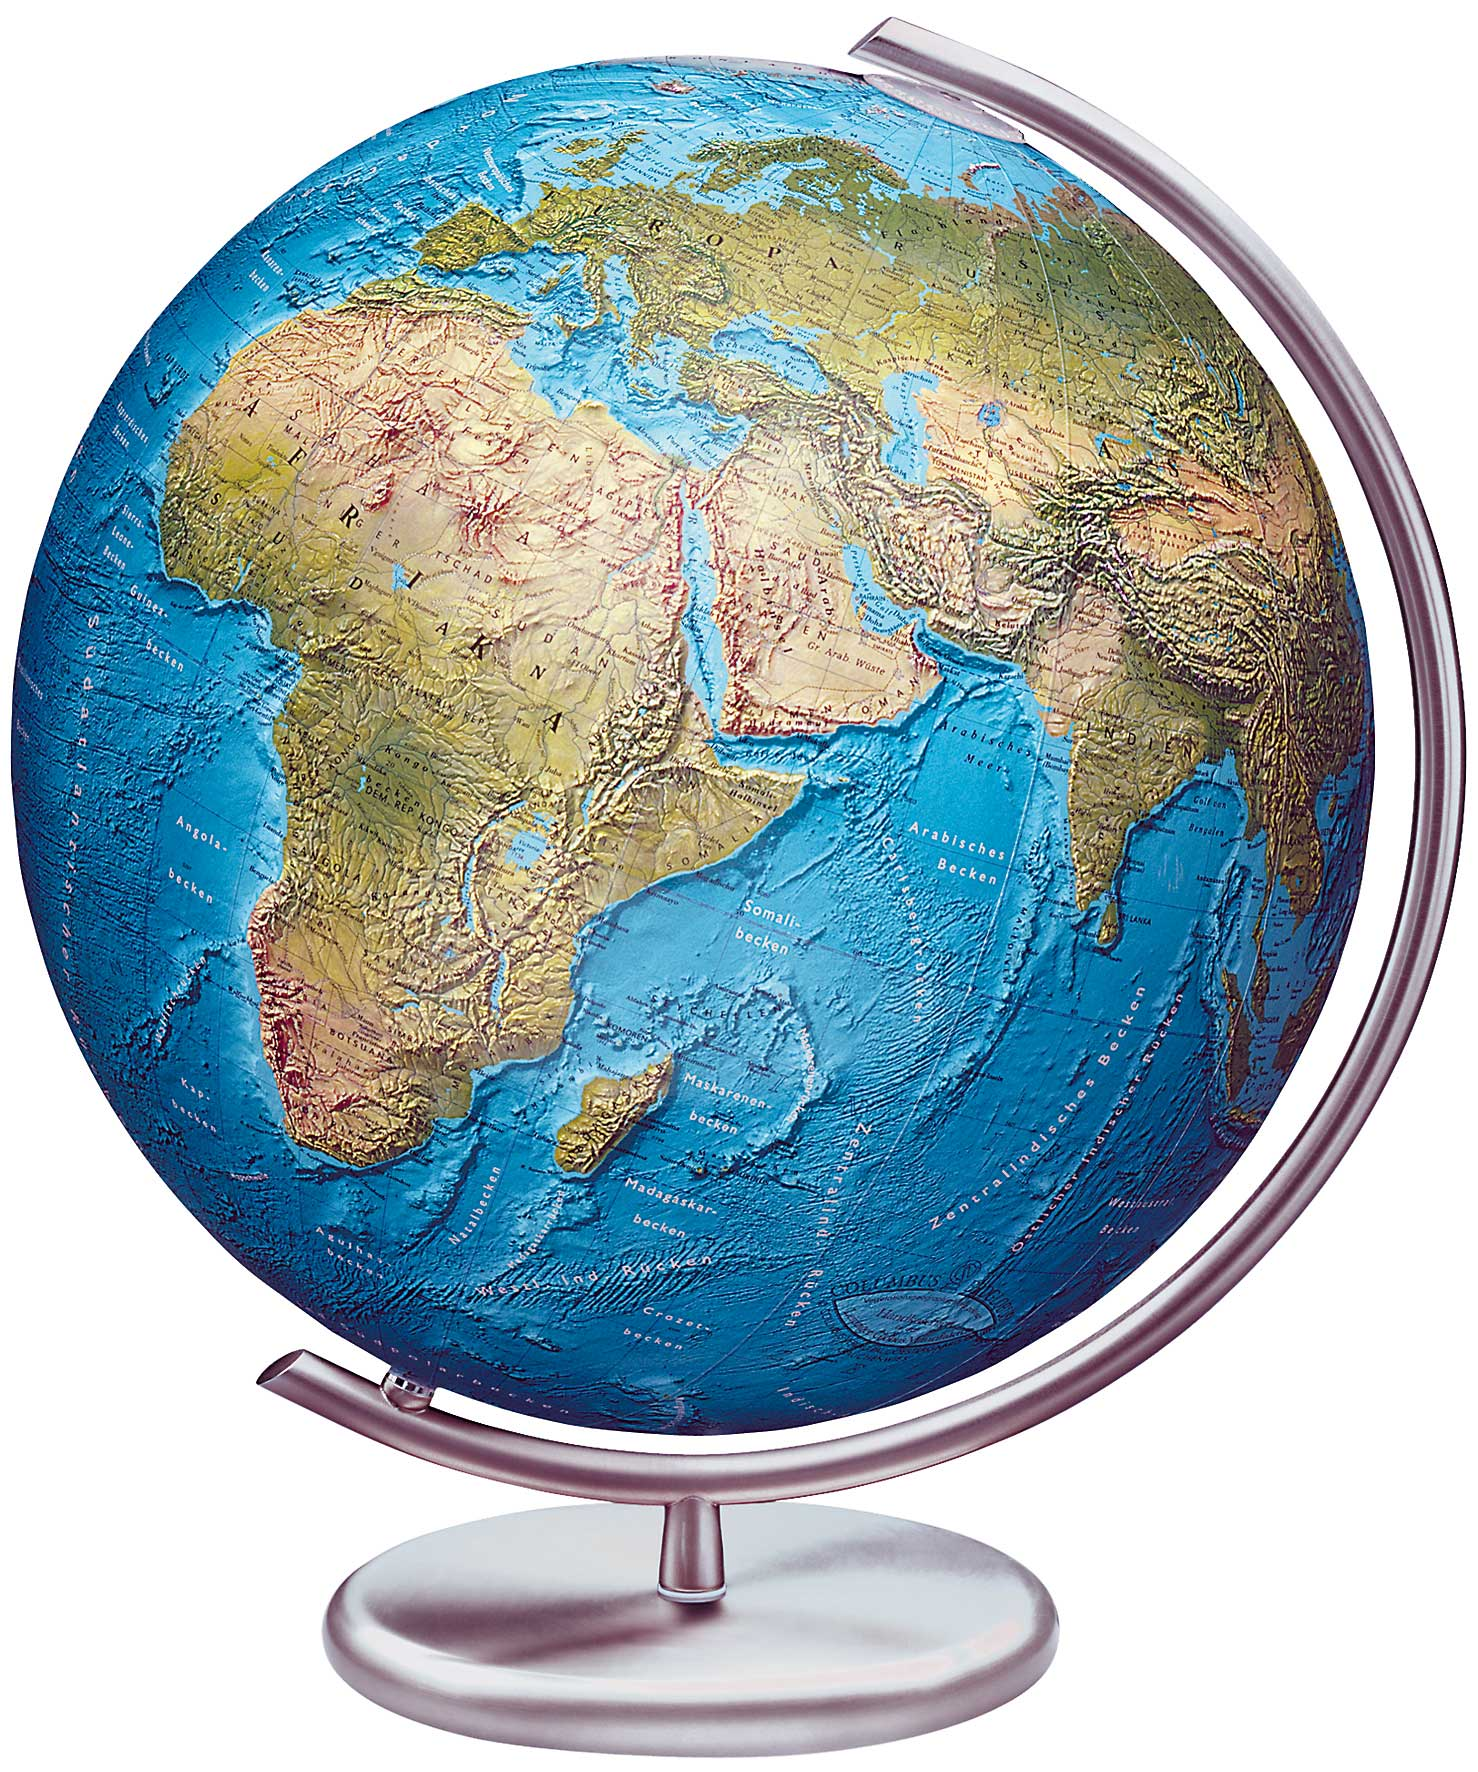 world globes for sale near me mini world globes all prices are in us dollars free shipping. Black Bedroom Furniture Sets. Home Design Ideas